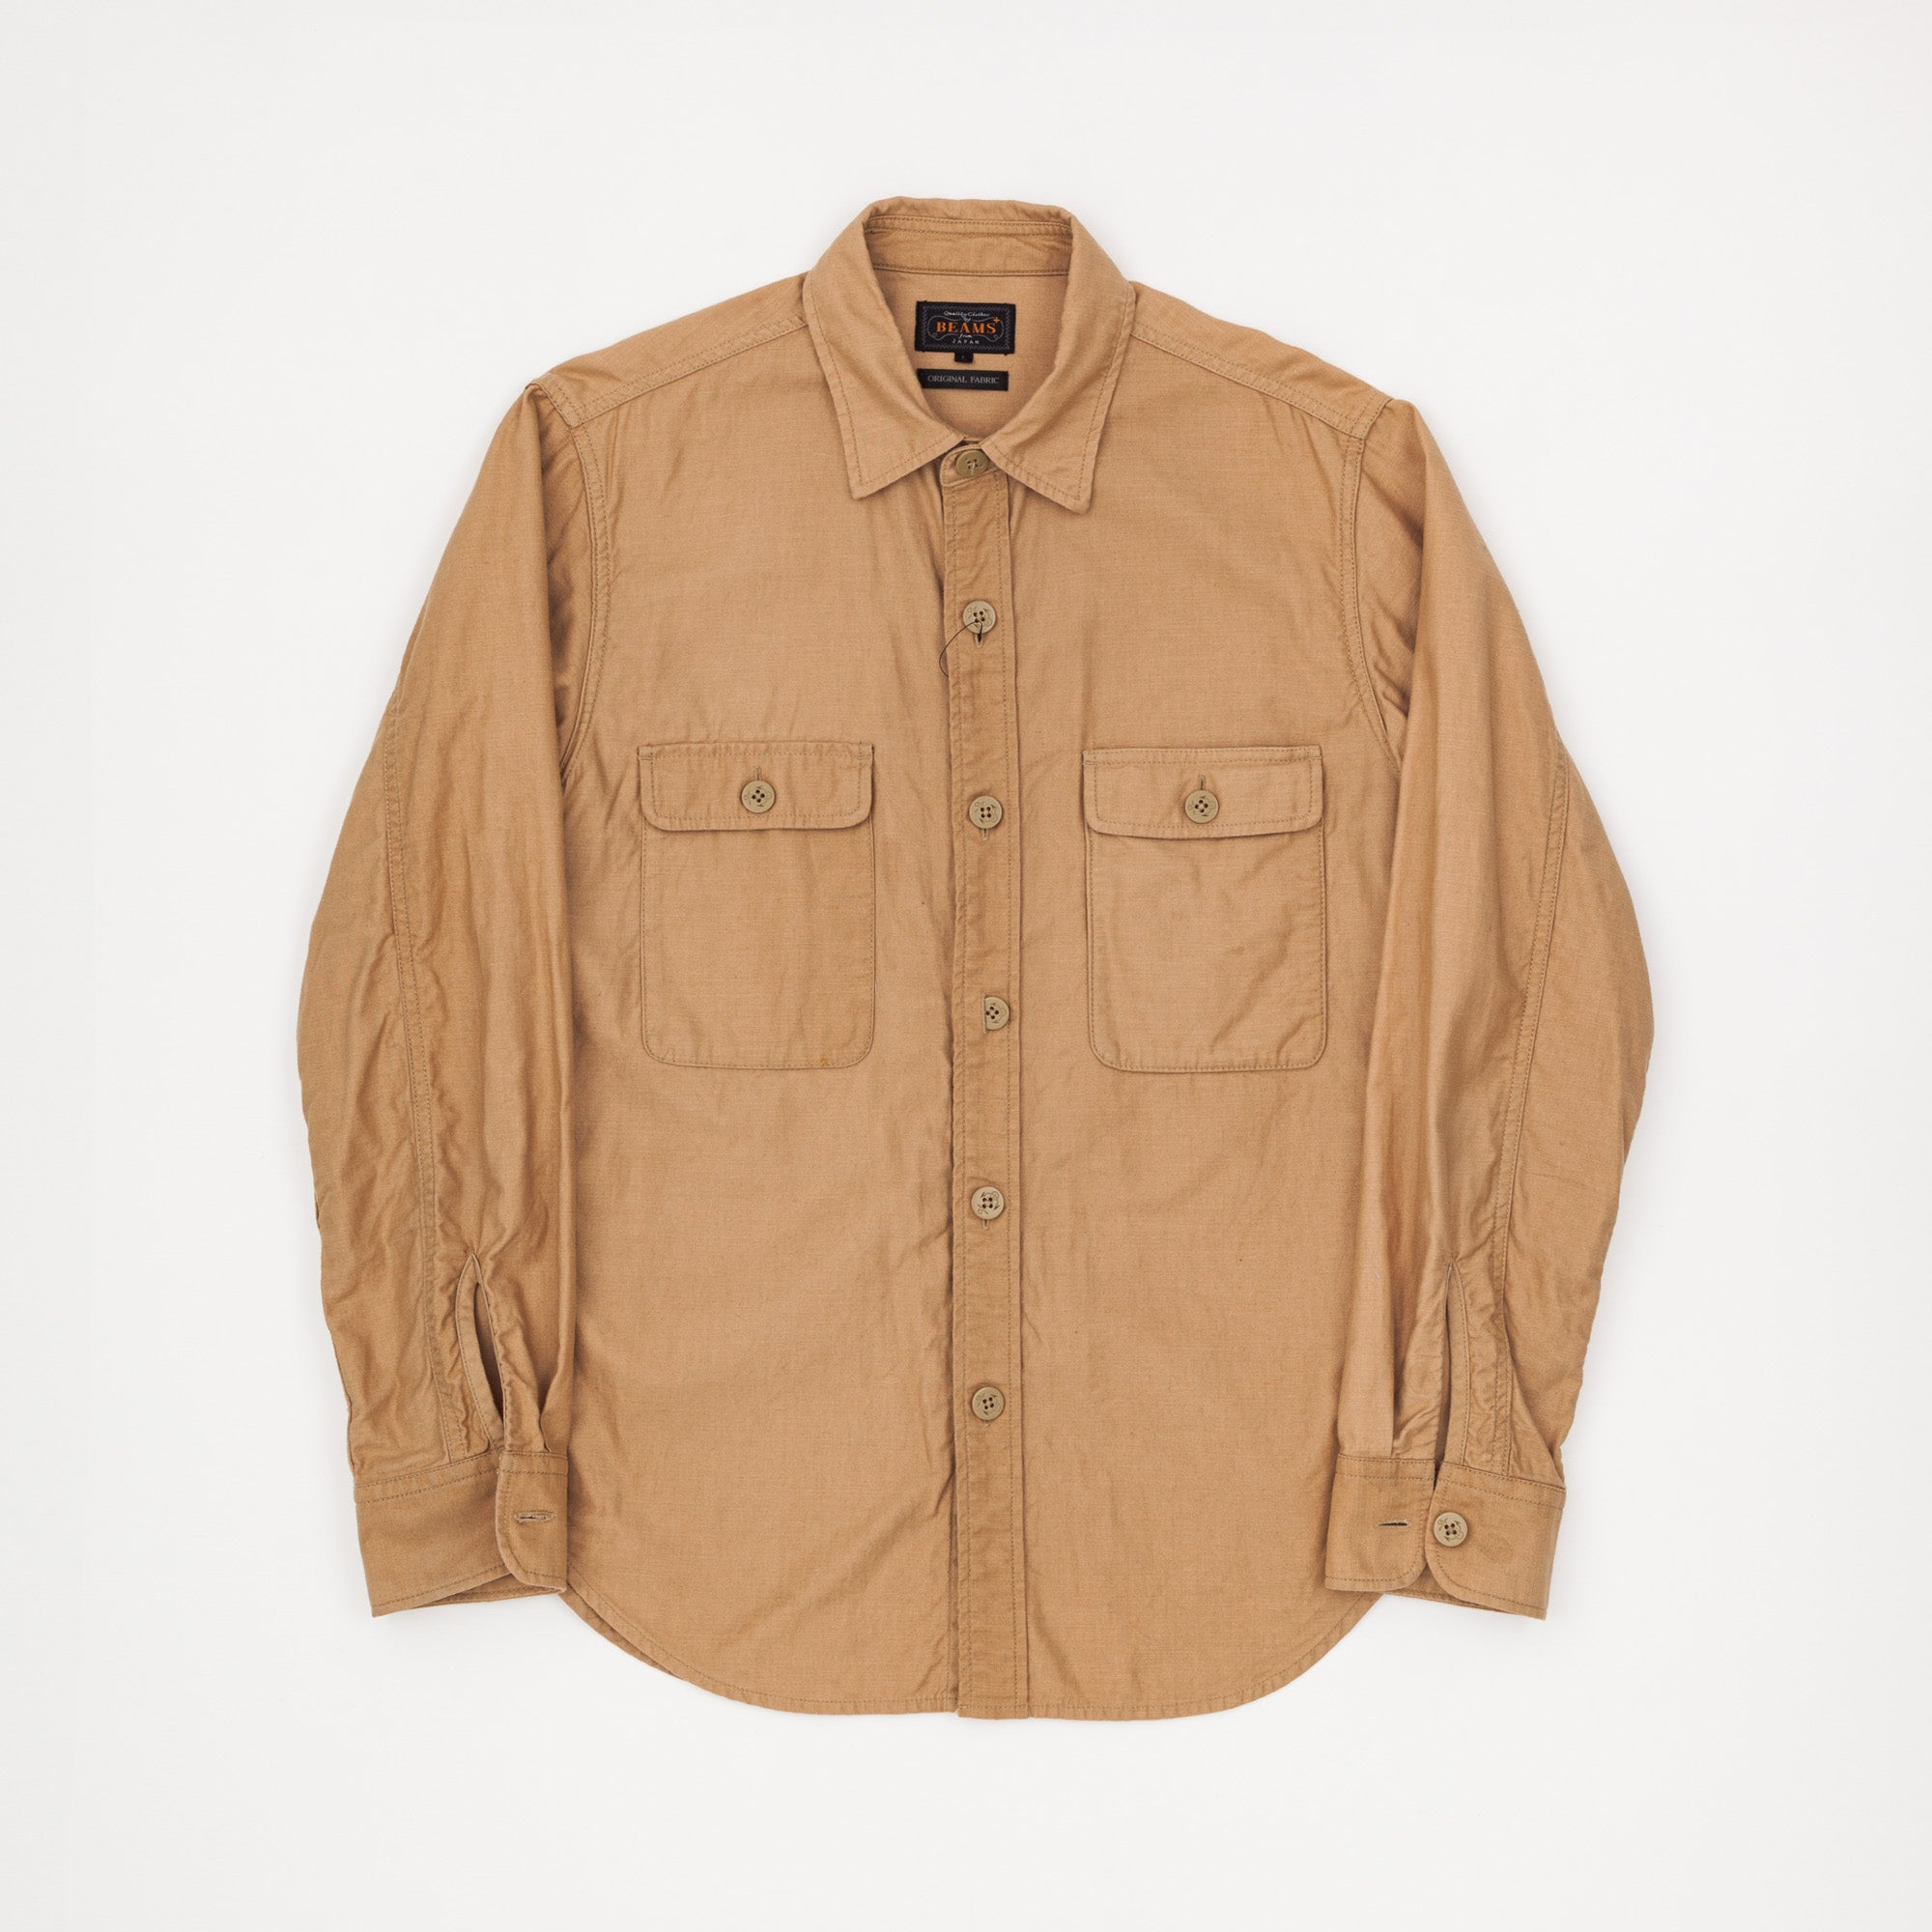 Beams+ Organic Cotton CPO Overshirt